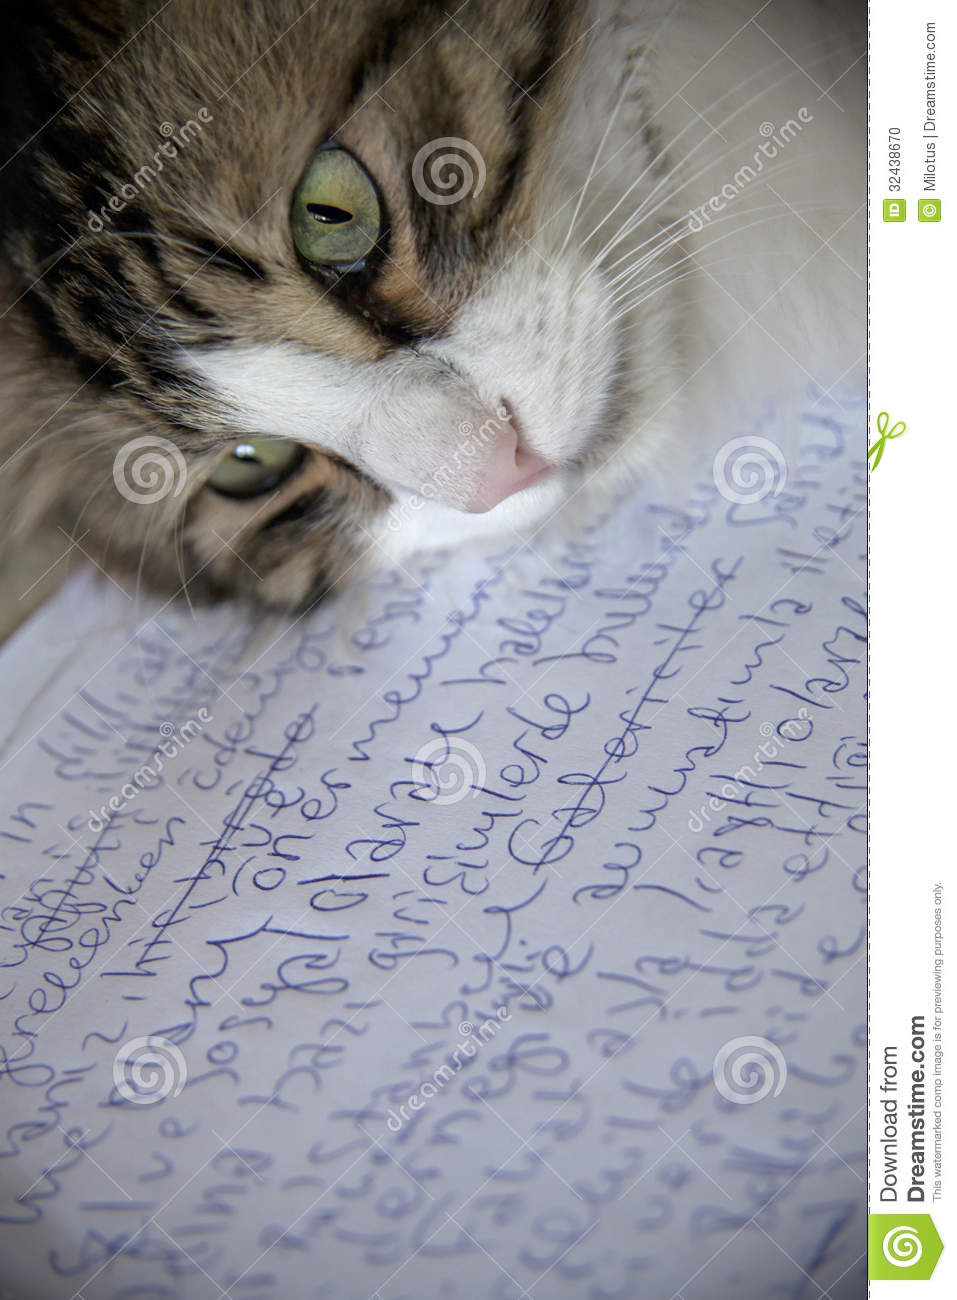 167 Words Short Essay on the Cat for kids